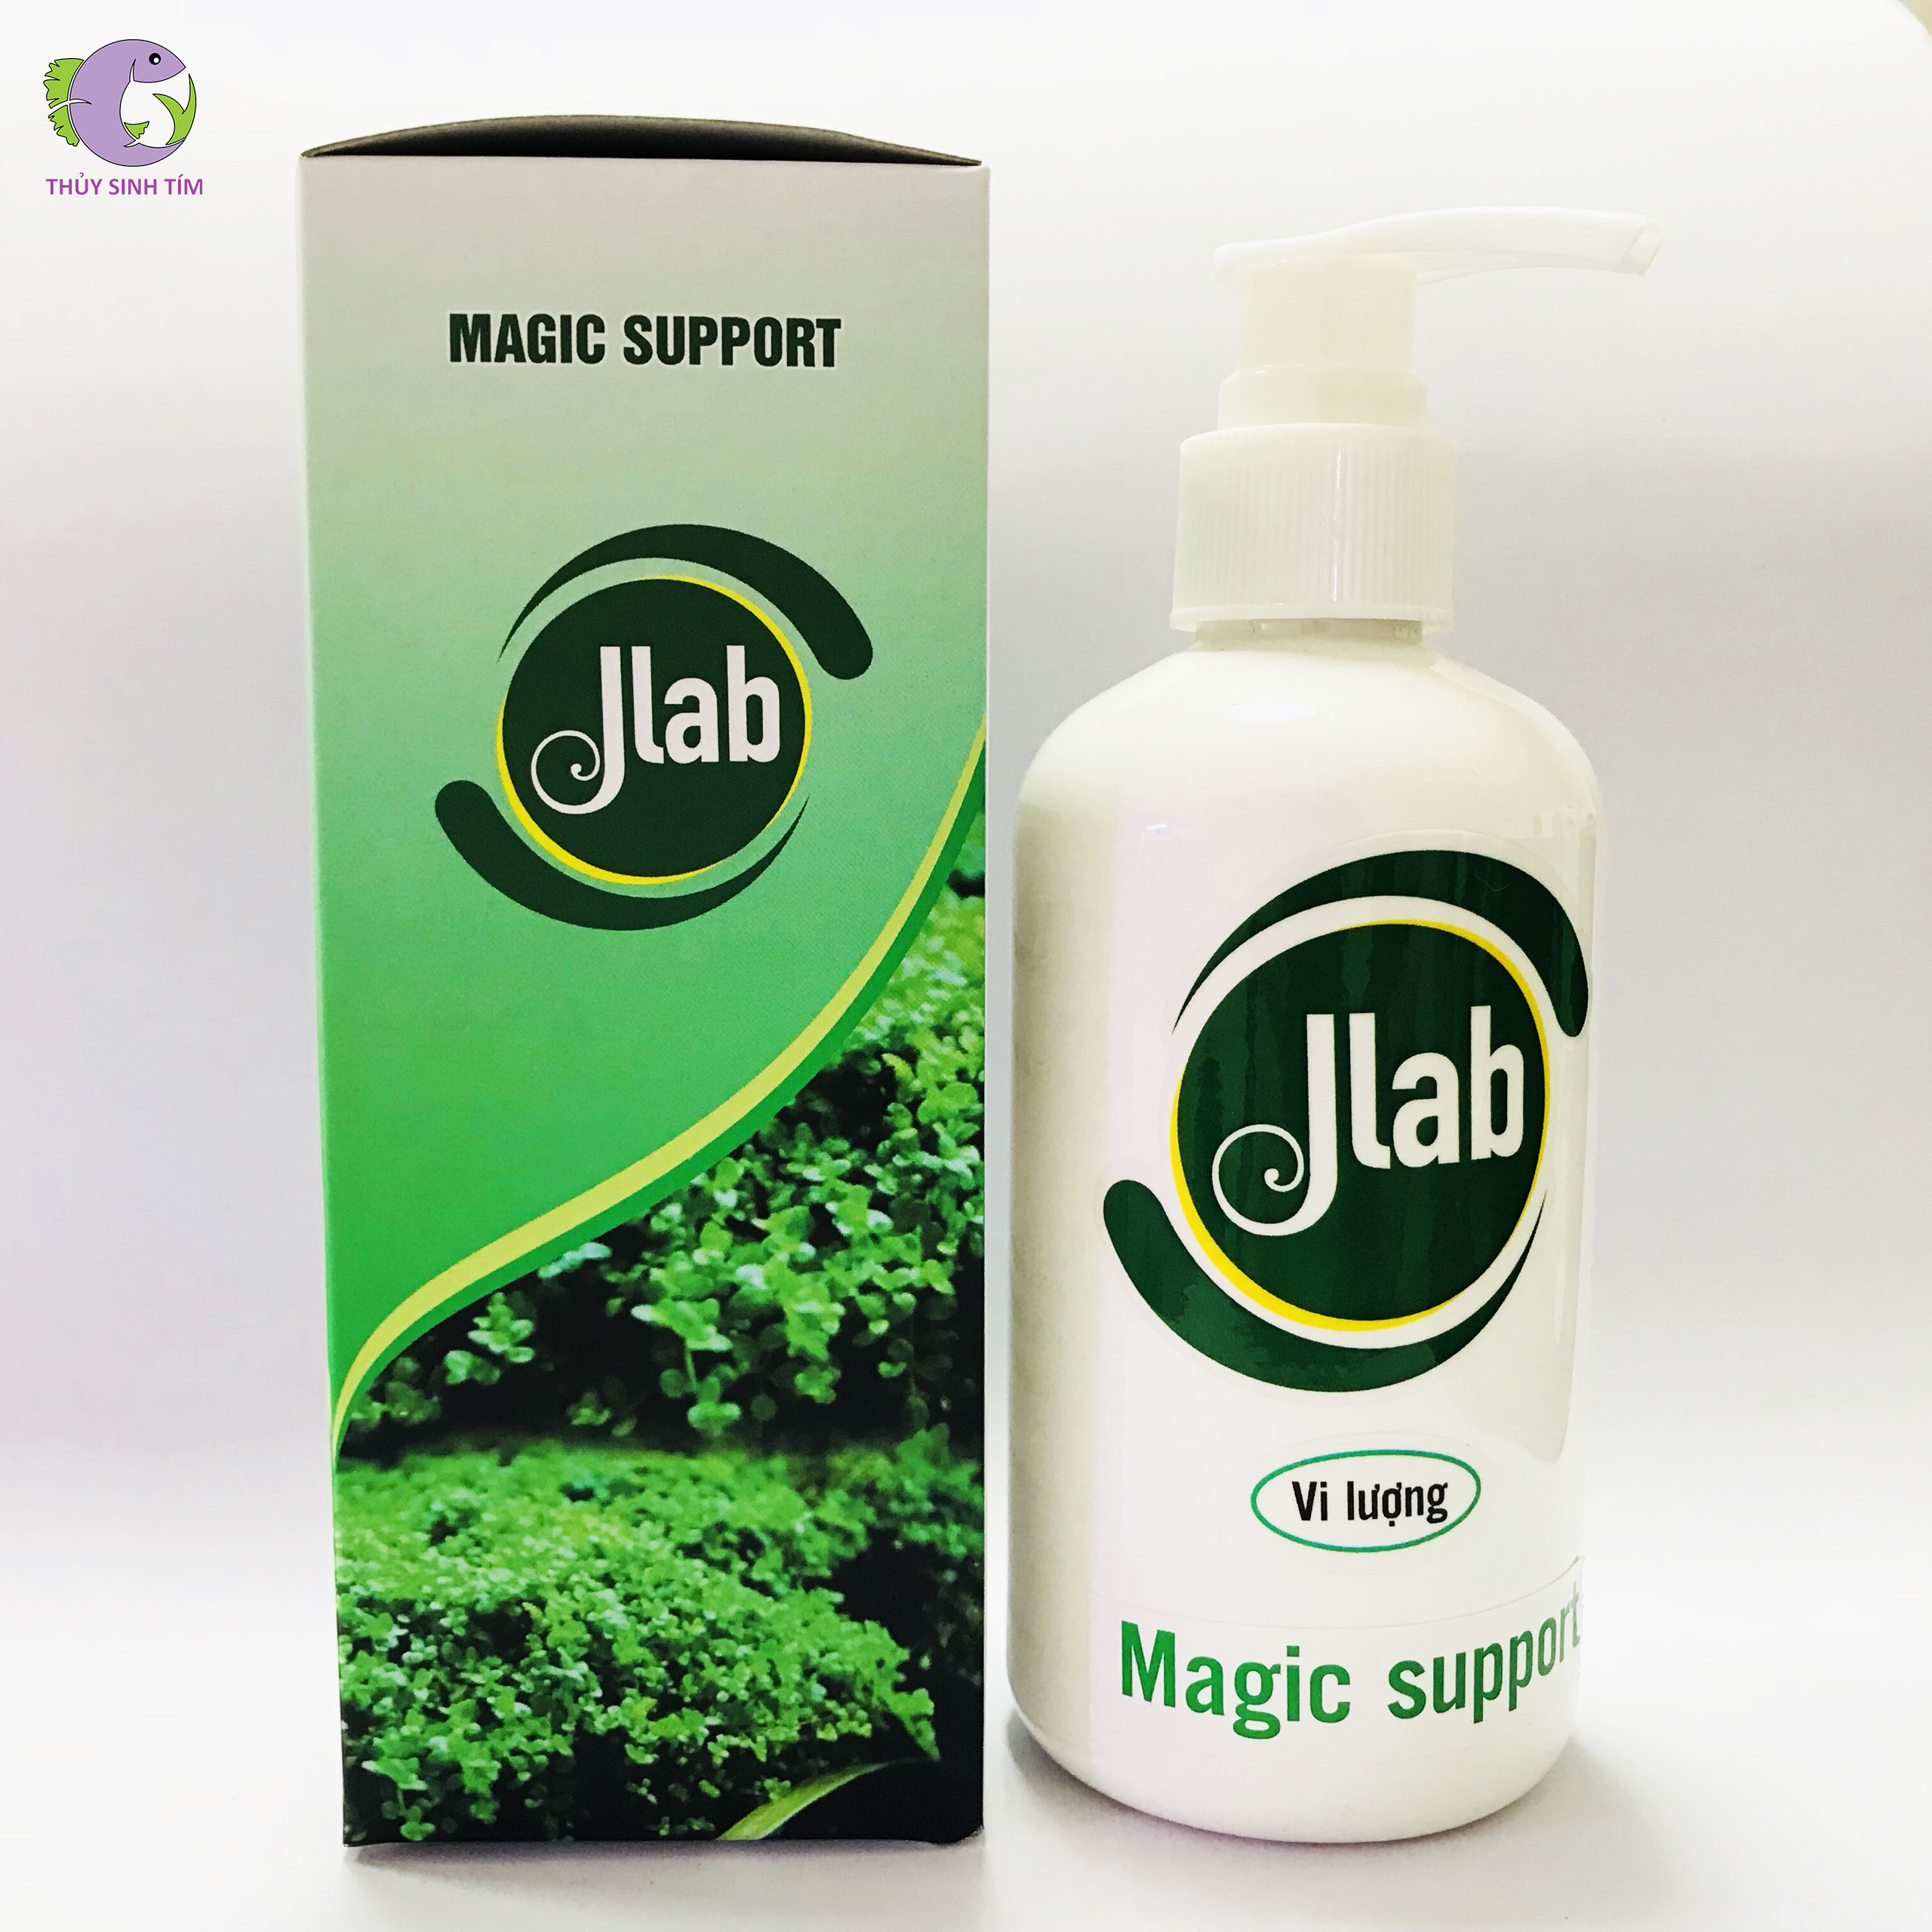 phân nước magic support jlab - 2